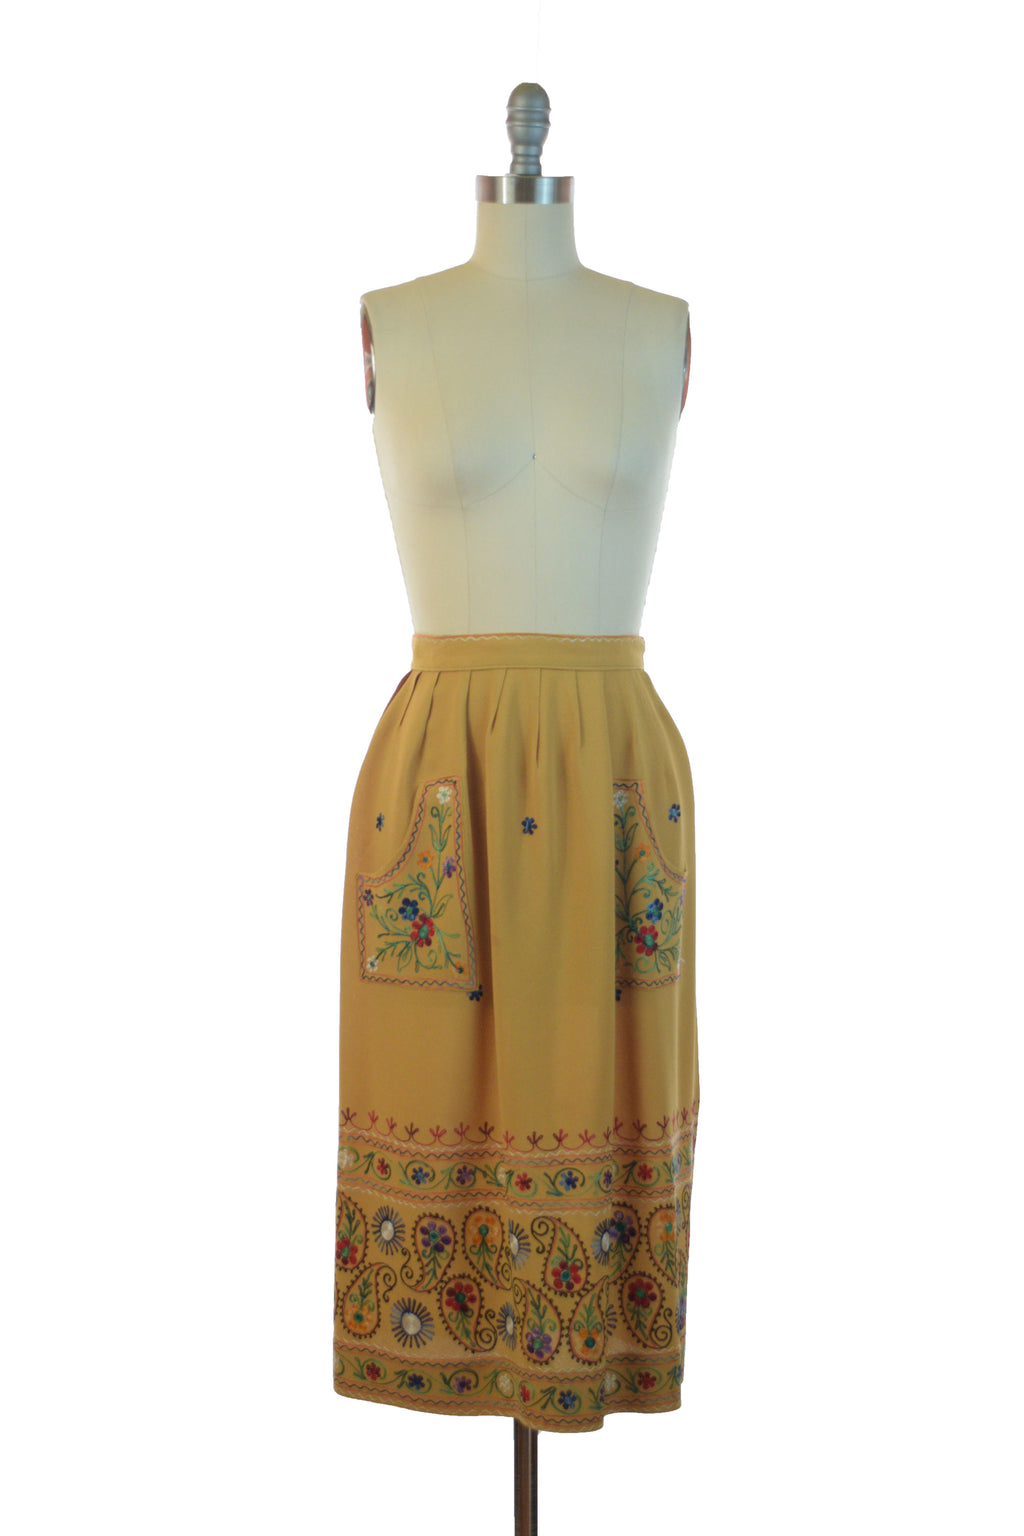 RESERVED ON LAYAWAY Stunning 1940s Embroidered Skirt of Mustard Rayon with Folkwear Inspired Multi-Colored Embroidery